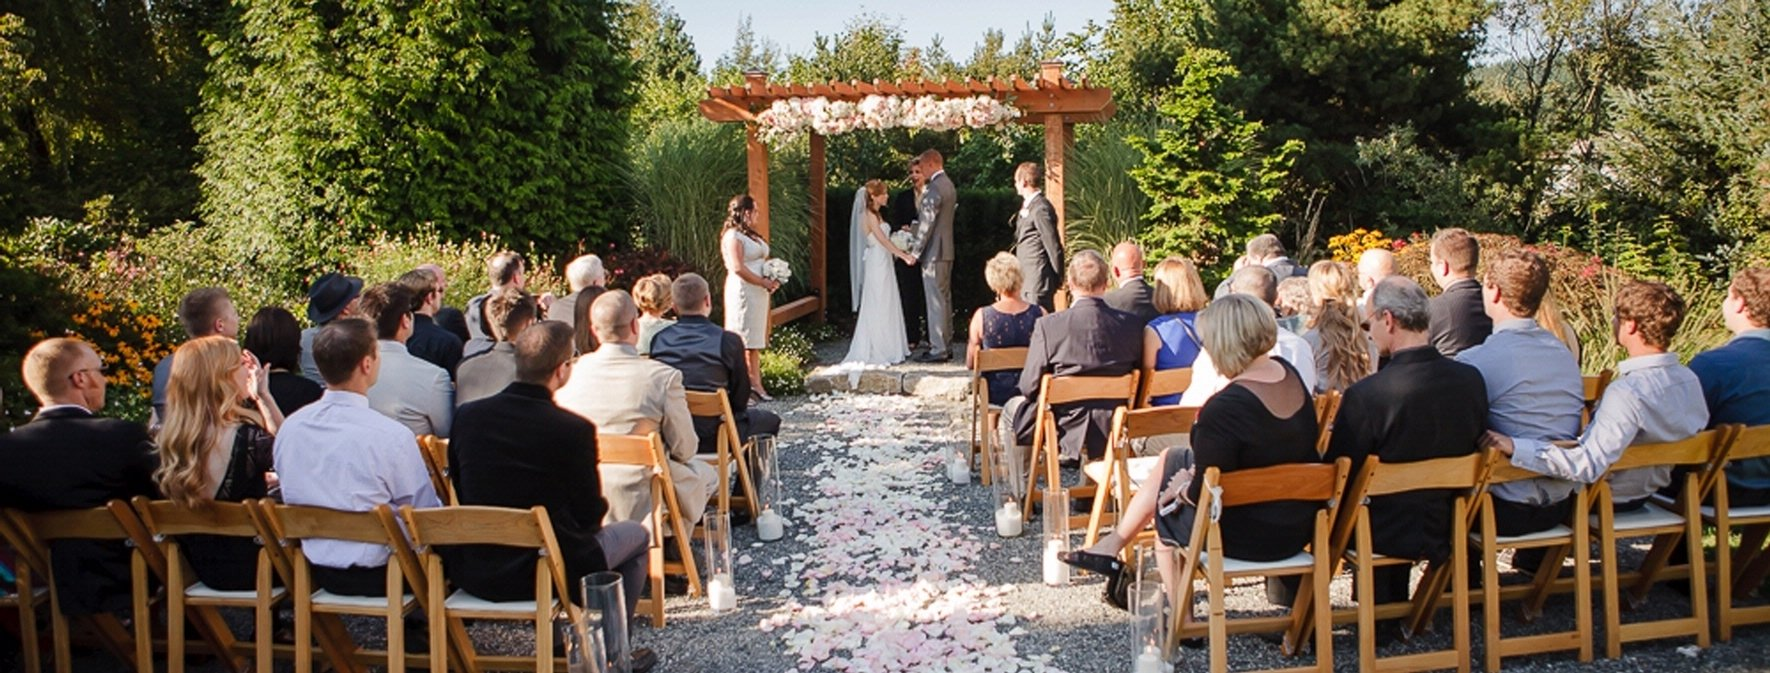 nice outdoor small wedding venues small weddings | our wedding ideas